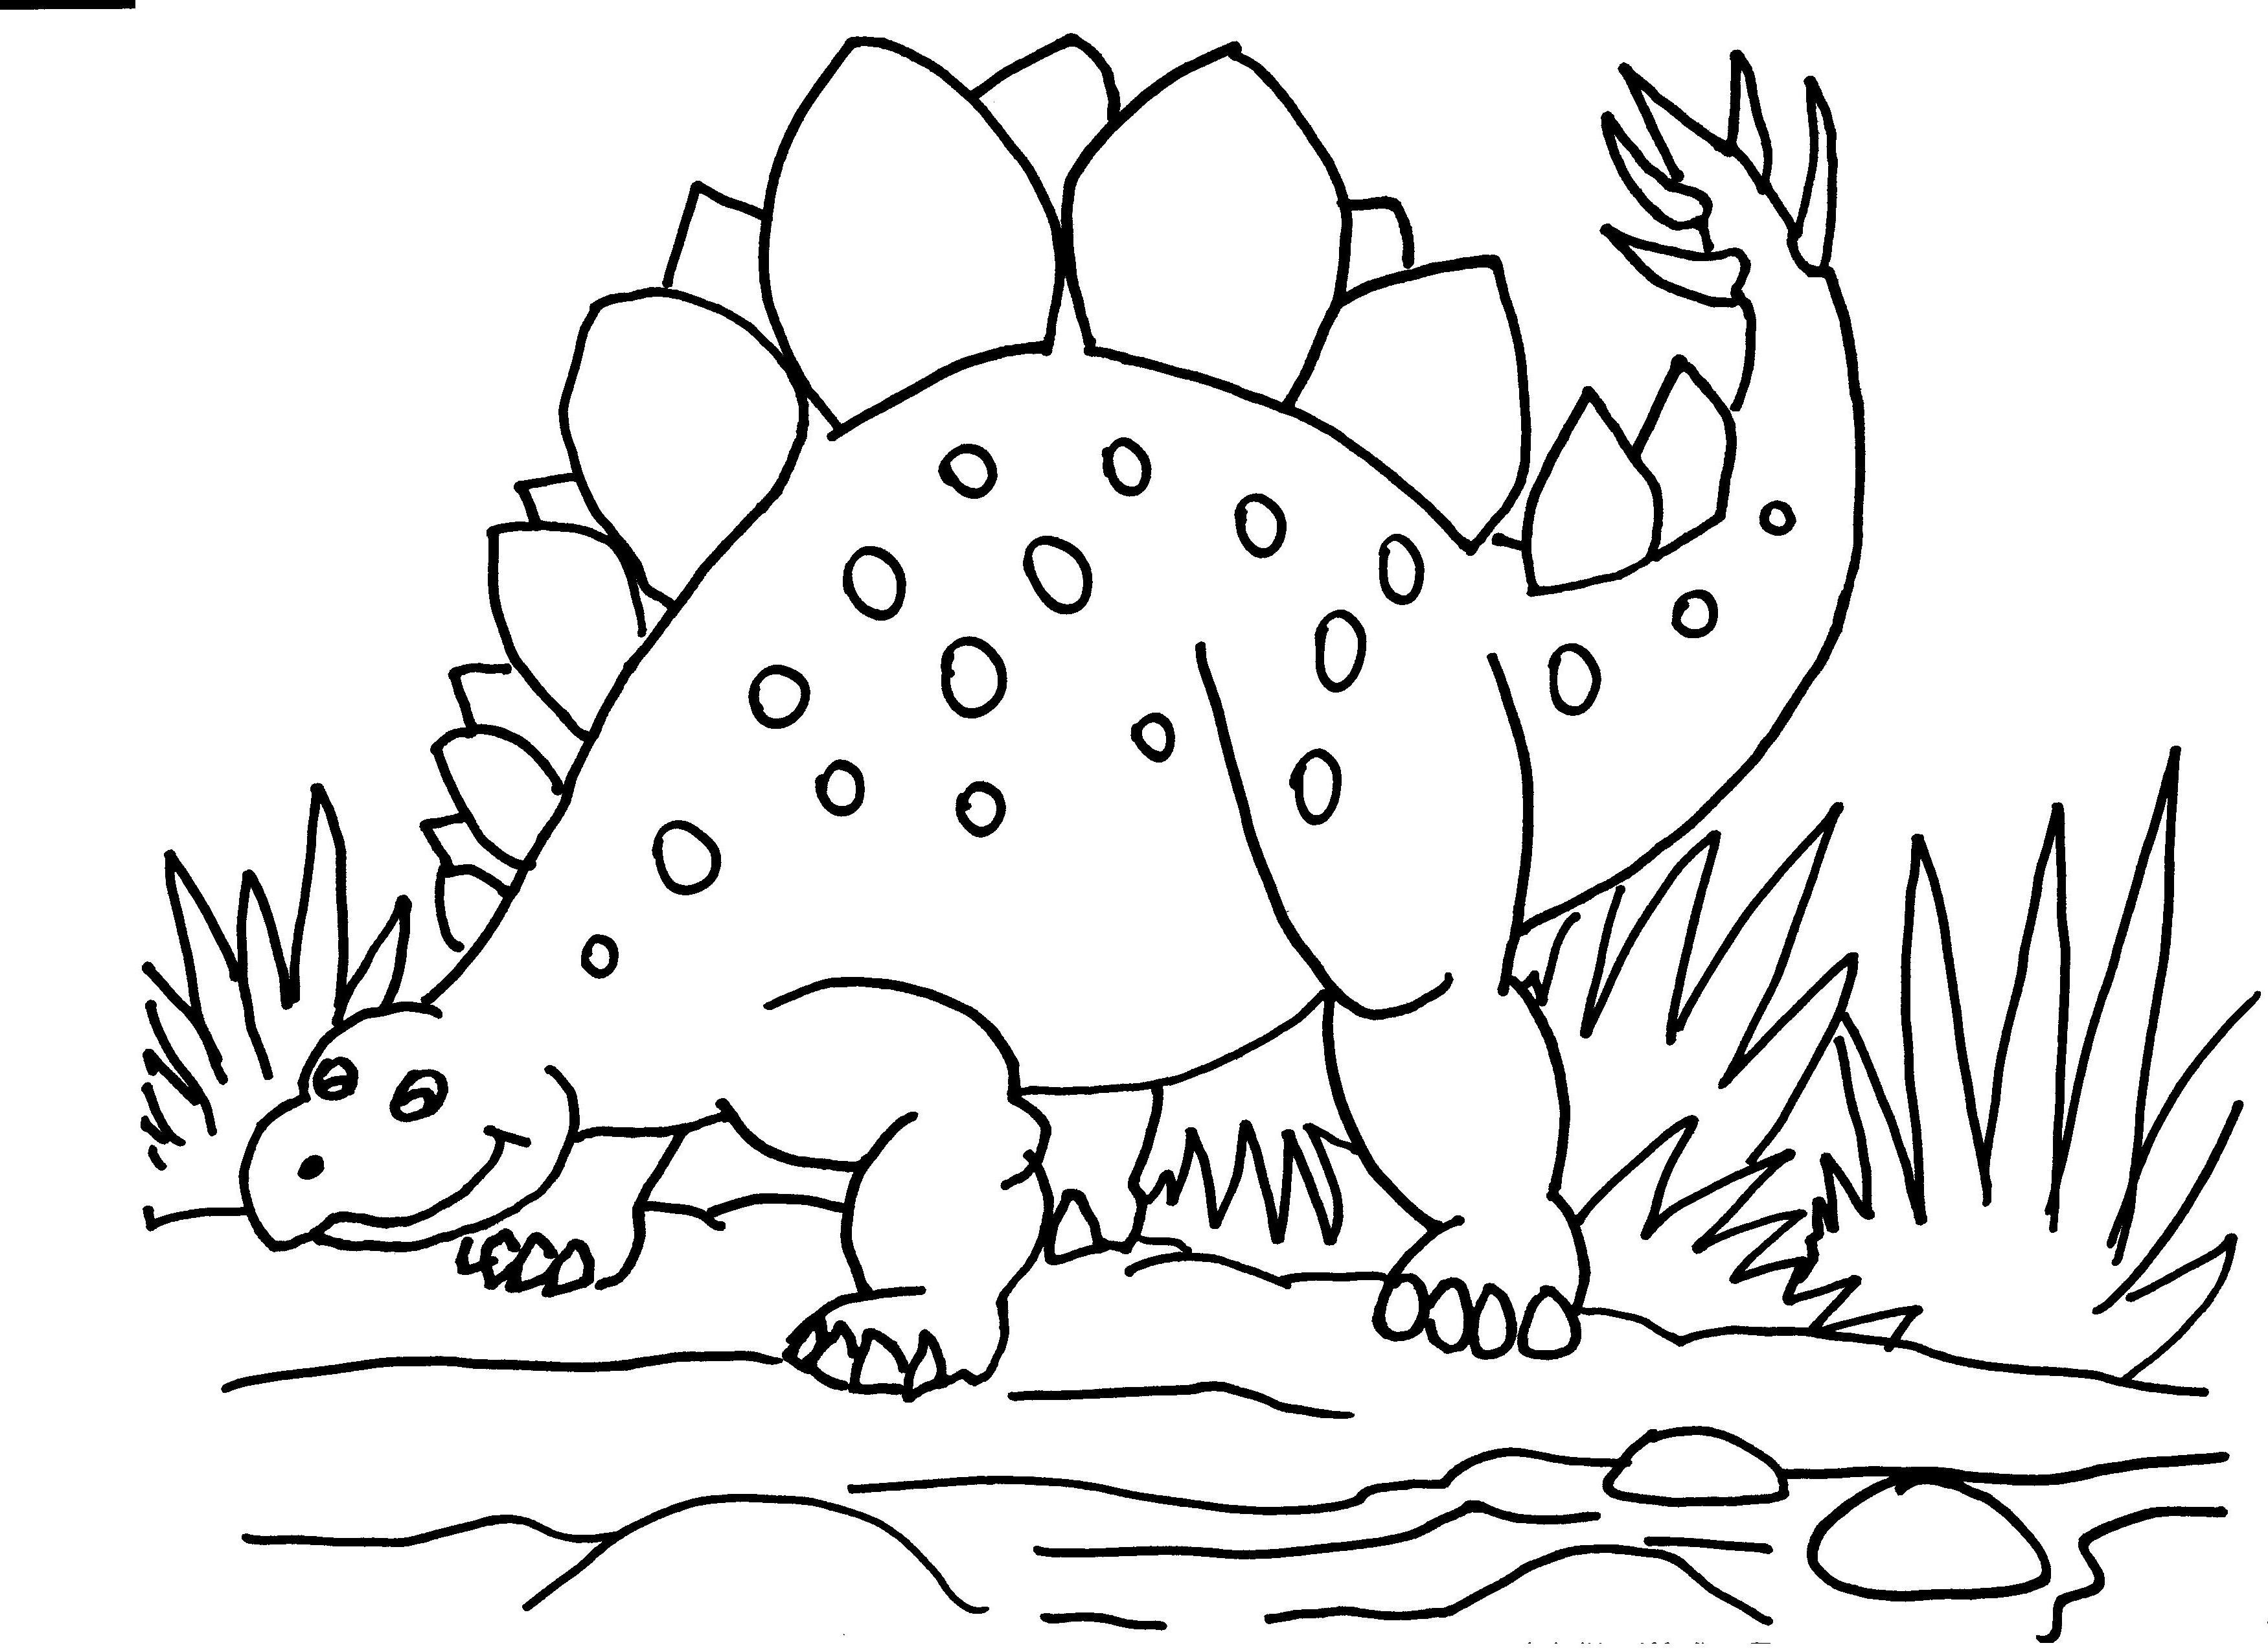 Stegosaurus Colouring Pages Coloring Pages Pinterest Stegosaurus Coloring Pages